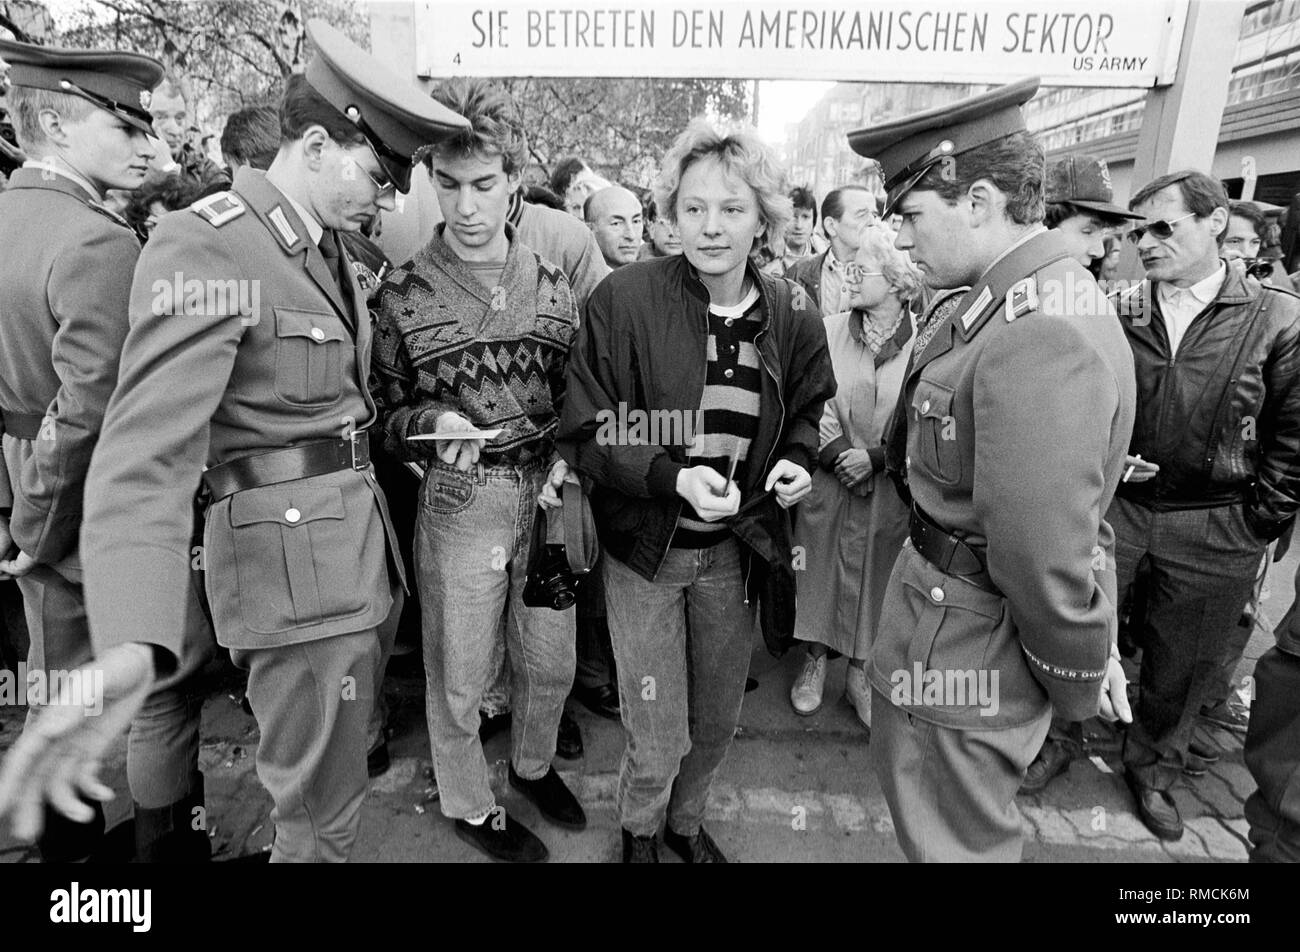 GDR border guards inspect the ID cards of GDR citizens, who return to East Berlin after visiting West Berlin. The picture was taken at the crossing point Checkpoint Charlie in the district of Kreuzberg. - Stock Image